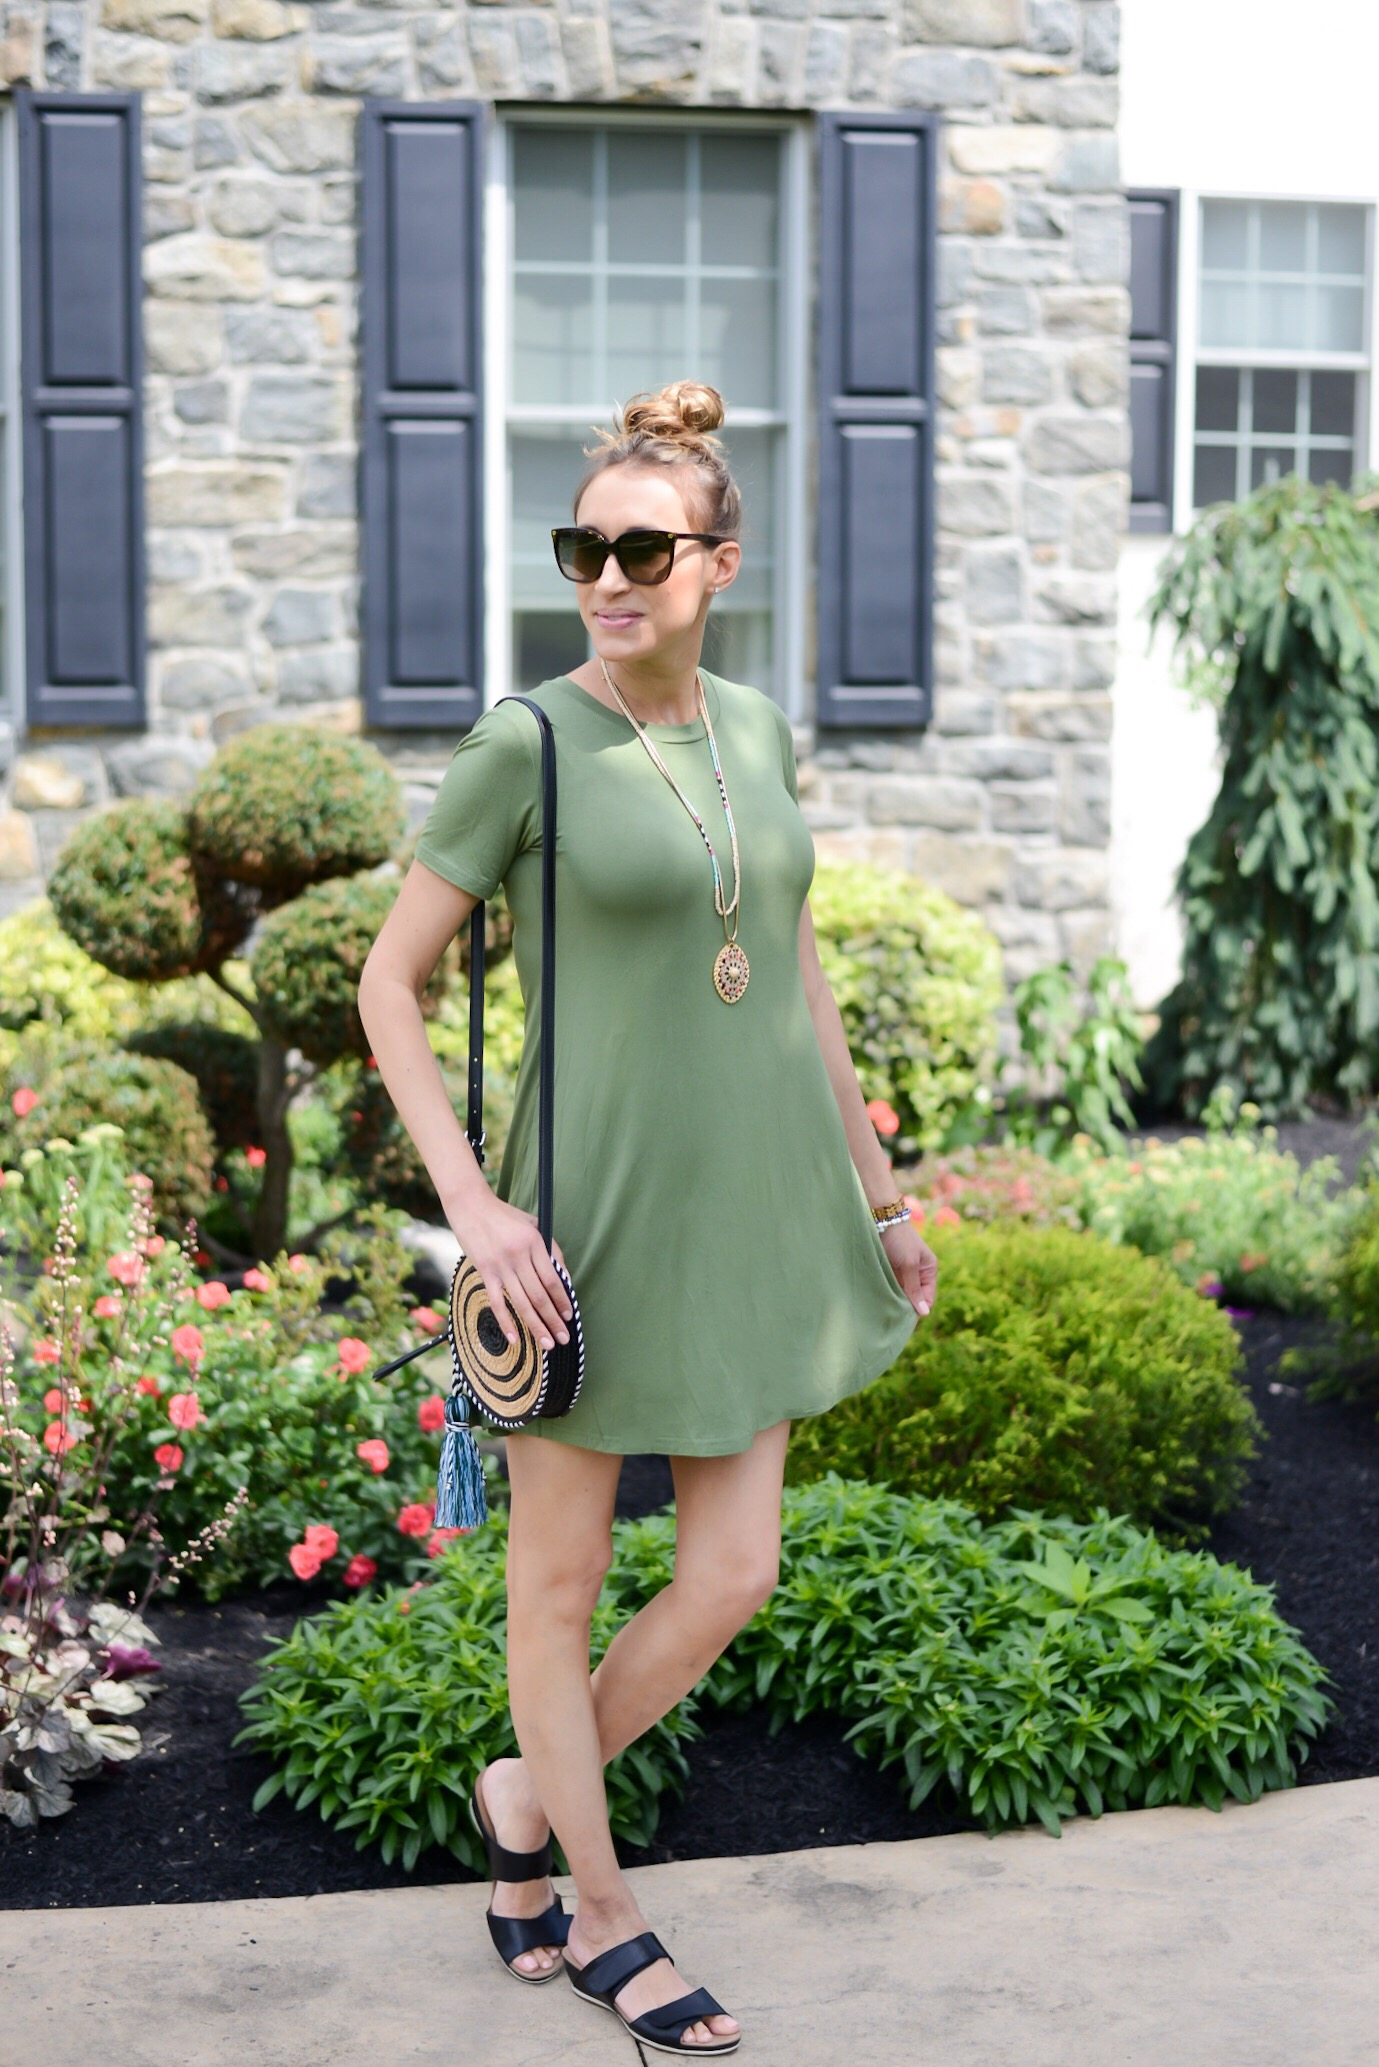 Summer Fashion Amazon Finds Under $21 (See My Outfits!)- t-shirt tunic dress